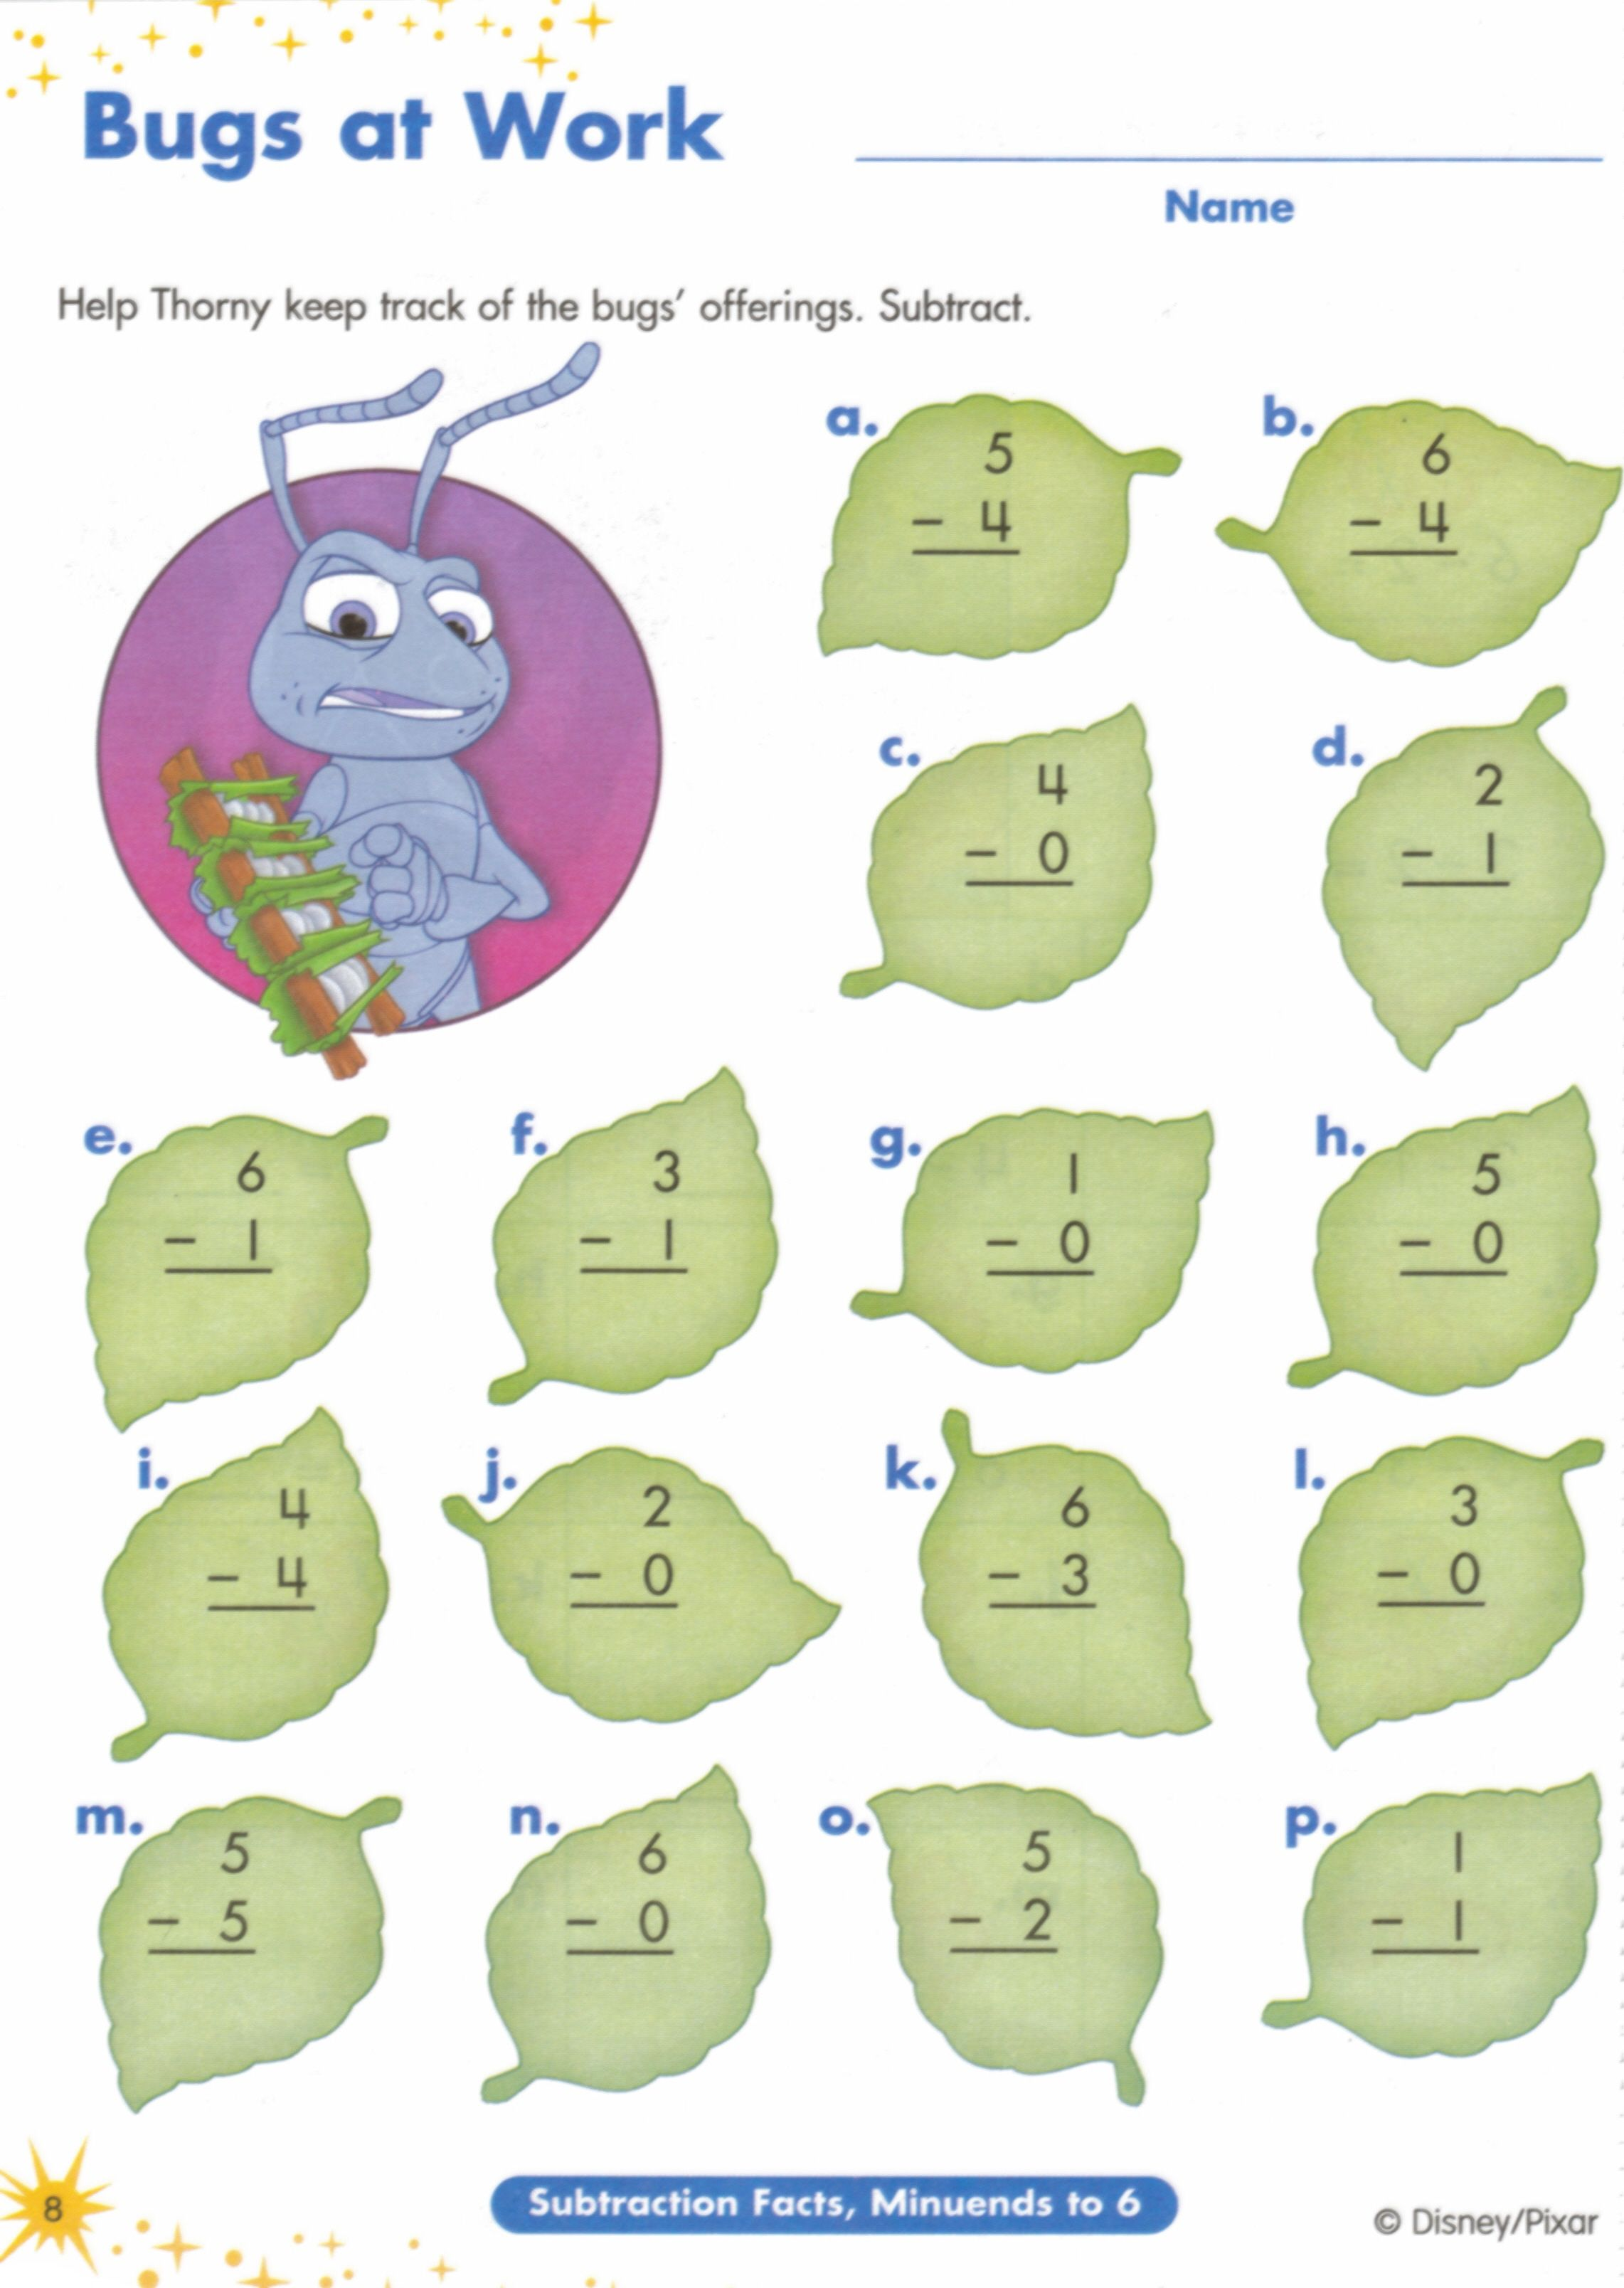 Proatmealus  Marvellous  Images About Worksheets On Pinterest  Fun Facts For Kids  With Exquisite  Images About Worksheets On Pinterest  Fun Facts For Kids Earth Day Worksheets And Jungles With Agreeable Liquid Volume Worksheet Also Kg Worksheets In Addition Tessellation Worksheets Printable And Pie Chart Problems Worksheets As Well As  Digit Subtraction With Regrouping Word Problems Worksheets Additionally Introduction To Spanish Worksheets From Pinterestcom With Proatmealus  Exquisite  Images About Worksheets On Pinterest  Fun Facts For Kids  With Agreeable  Images About Worksheets On Pinterest  Fun Facts For Kids Earth Day Worksheets And Jungles And Marvellous Liquid Volume Worksheet Also Kg Worksheets In Addition Tessellation Worksheets Printable From Pinterestcom